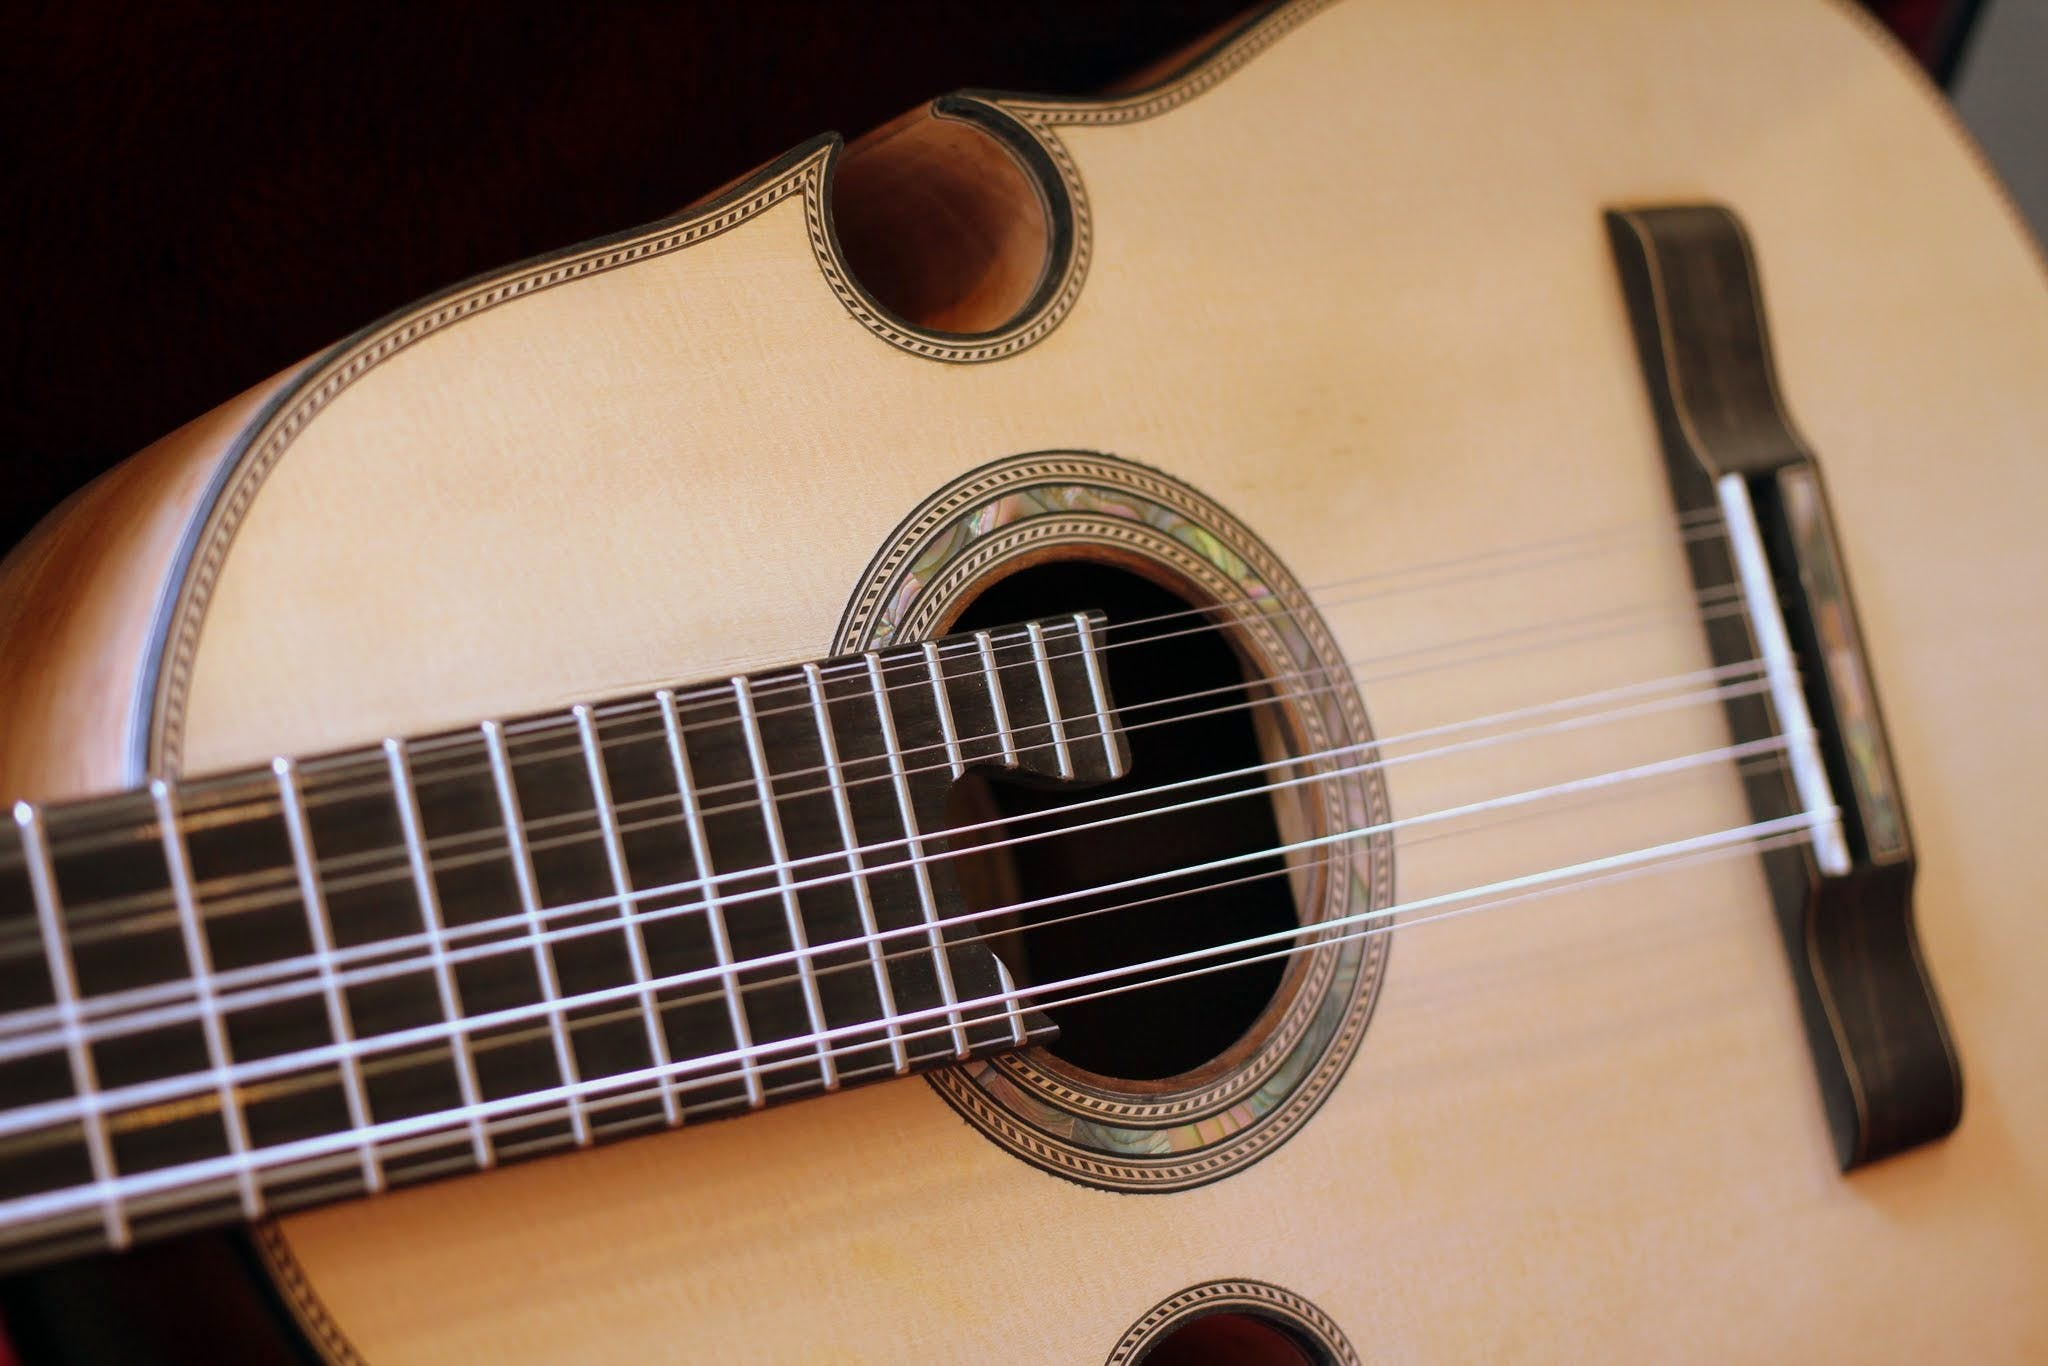 Free stock photo of classical music, guitar, musical instrument, string instrument